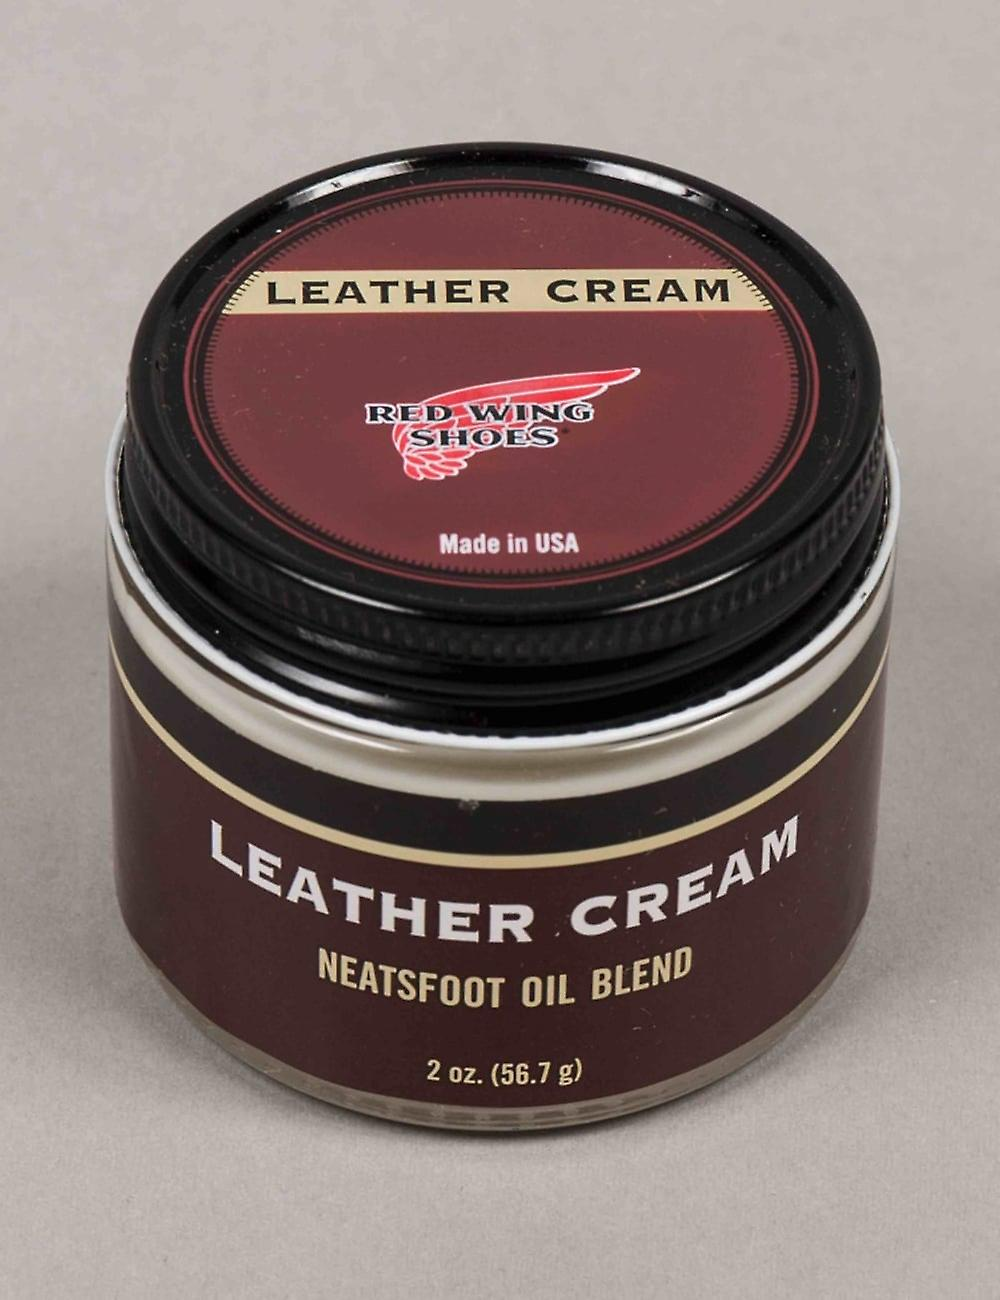 Red Wing 97095 Leather Cream (neatsfoot Oil) 2oz